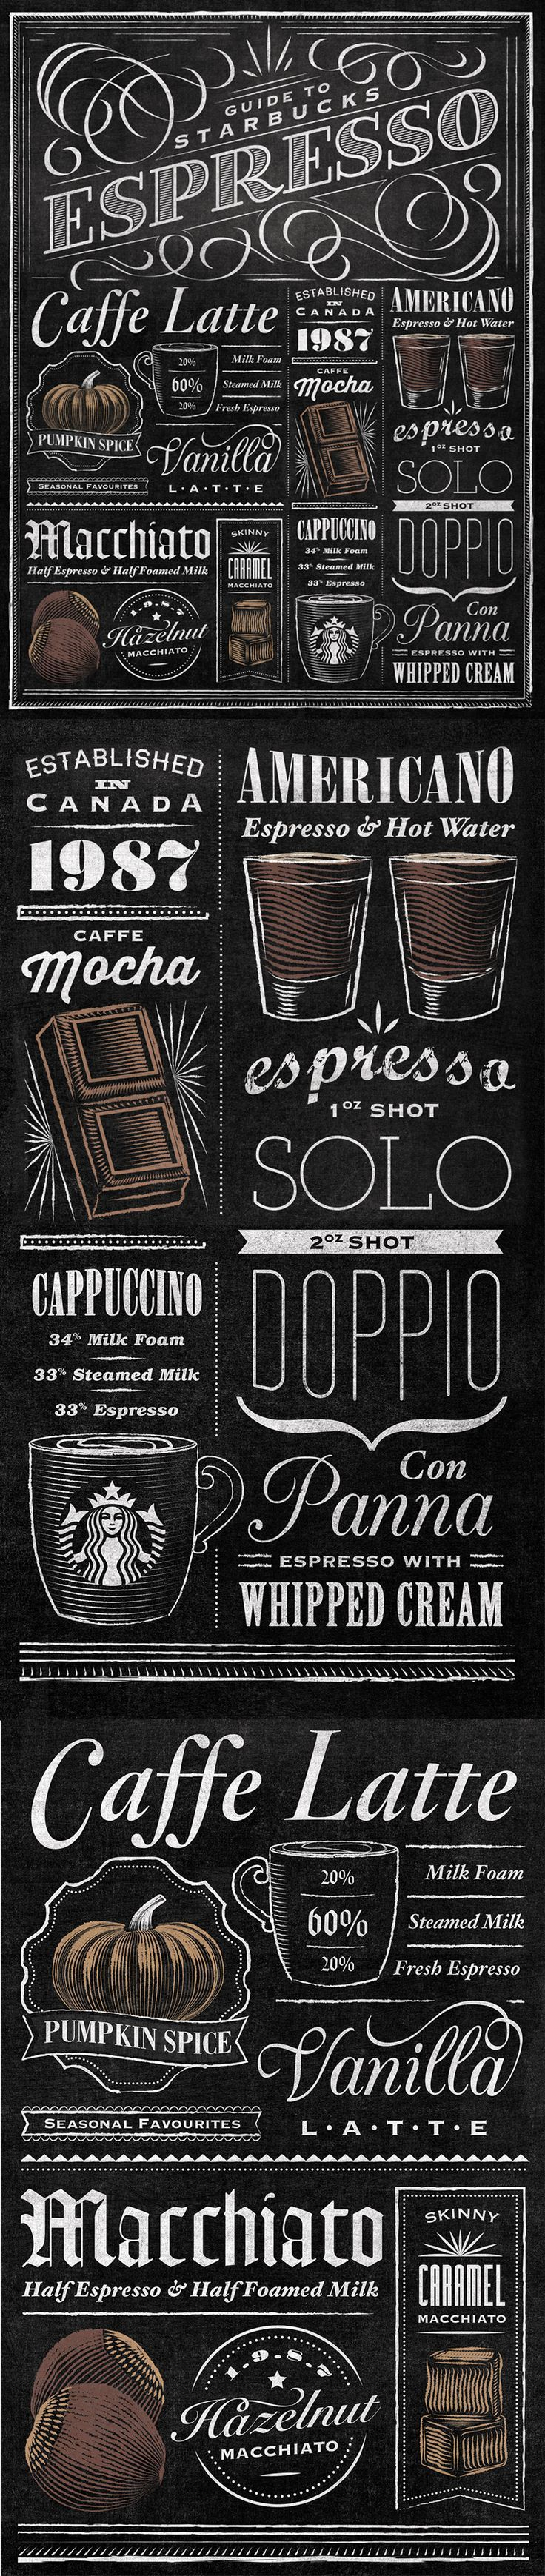 Starbucks Espresso Guide Typographic Mural by Jaymie McAmmond #infographics